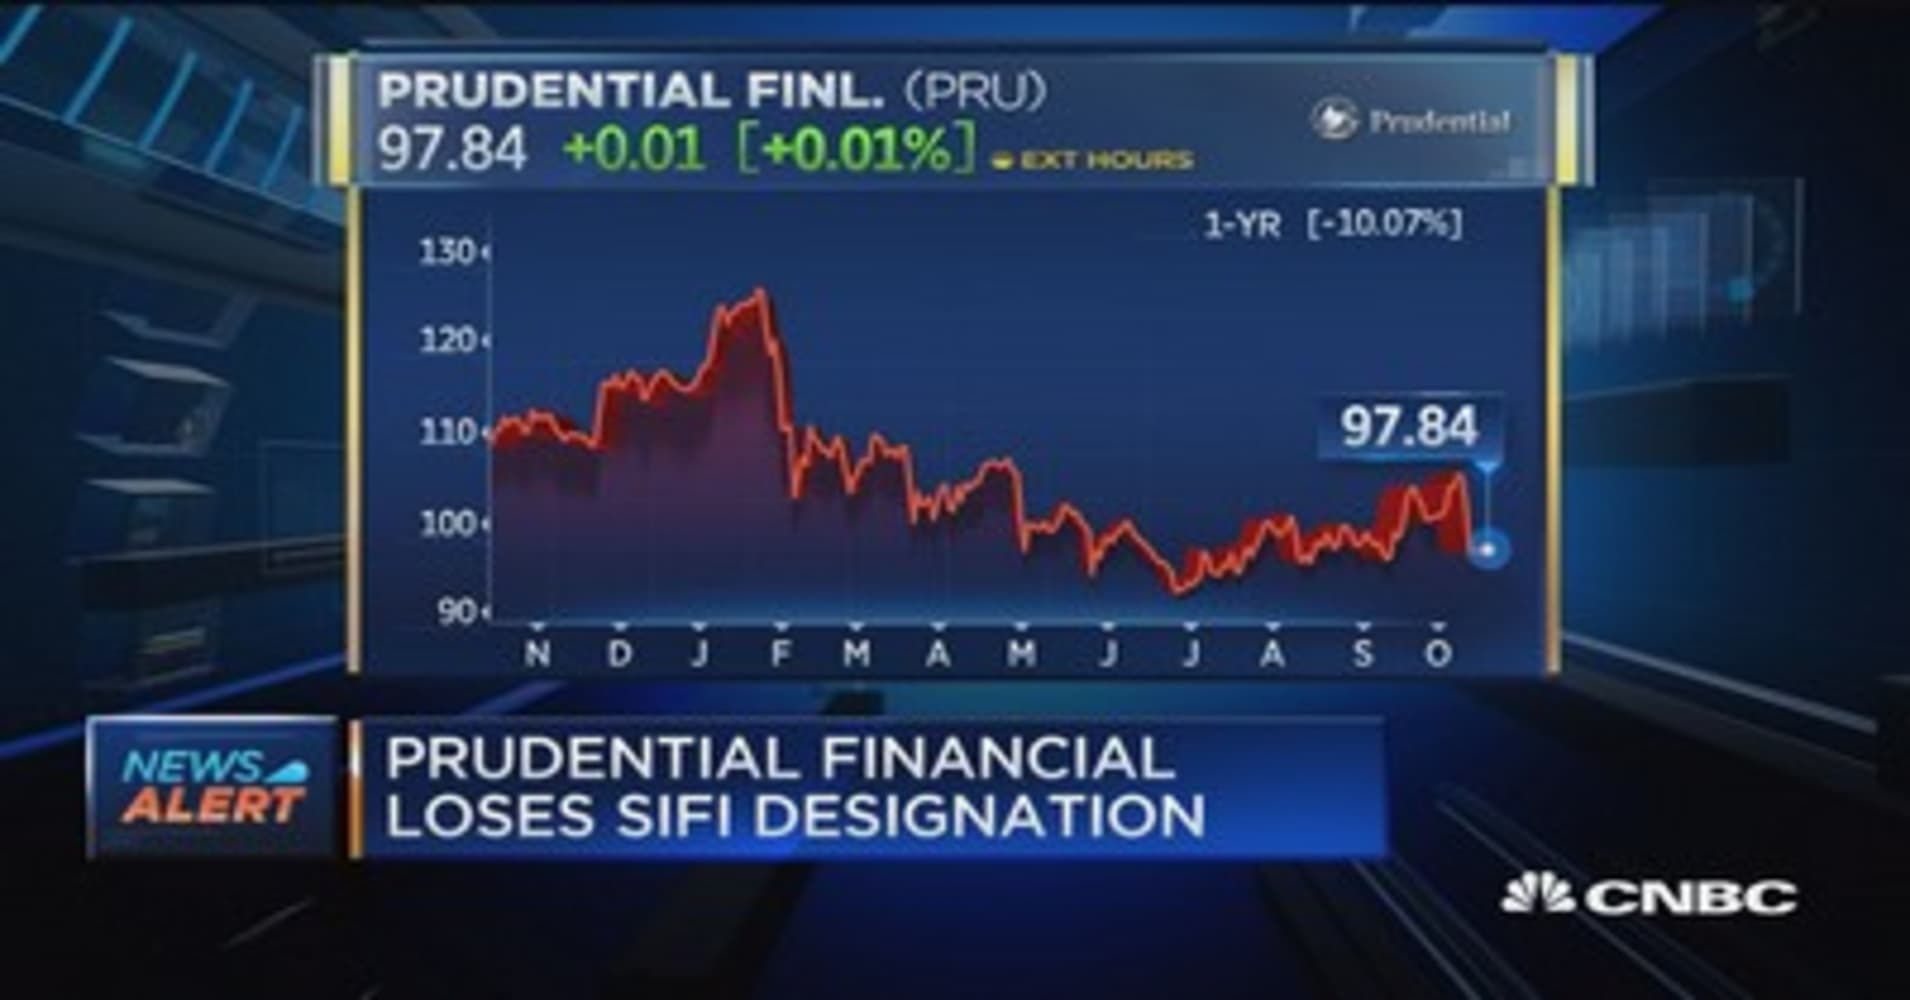 Prudential Financial Shakes Off Governments Too Big To Fail Label